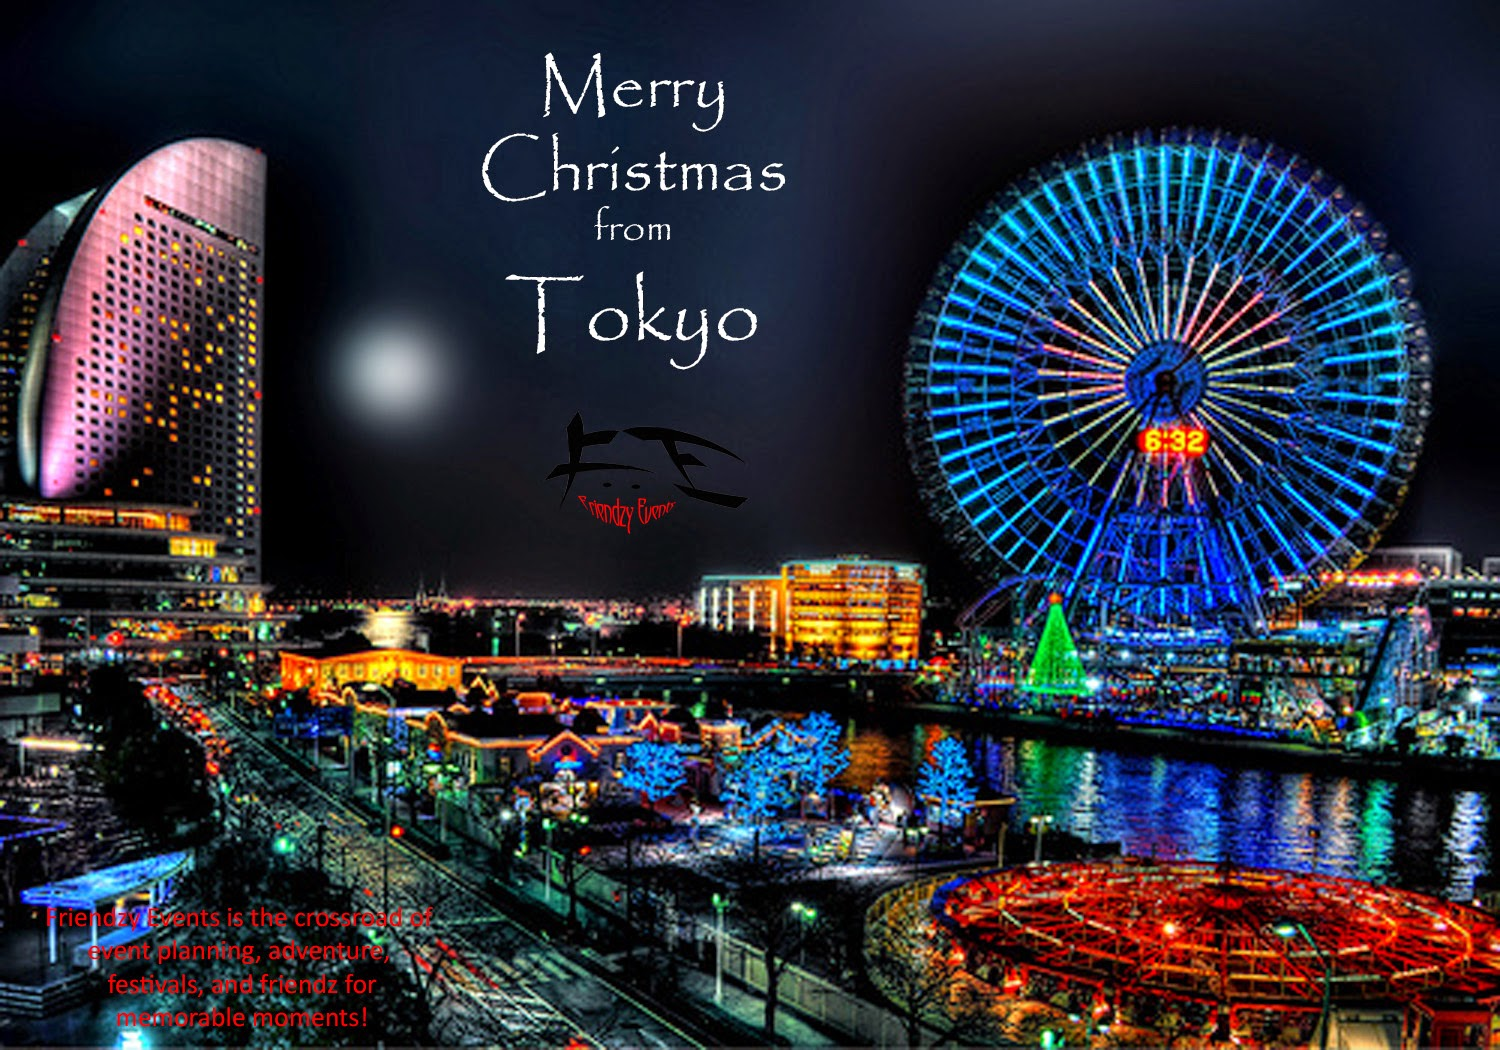 merry christmas from tokyo